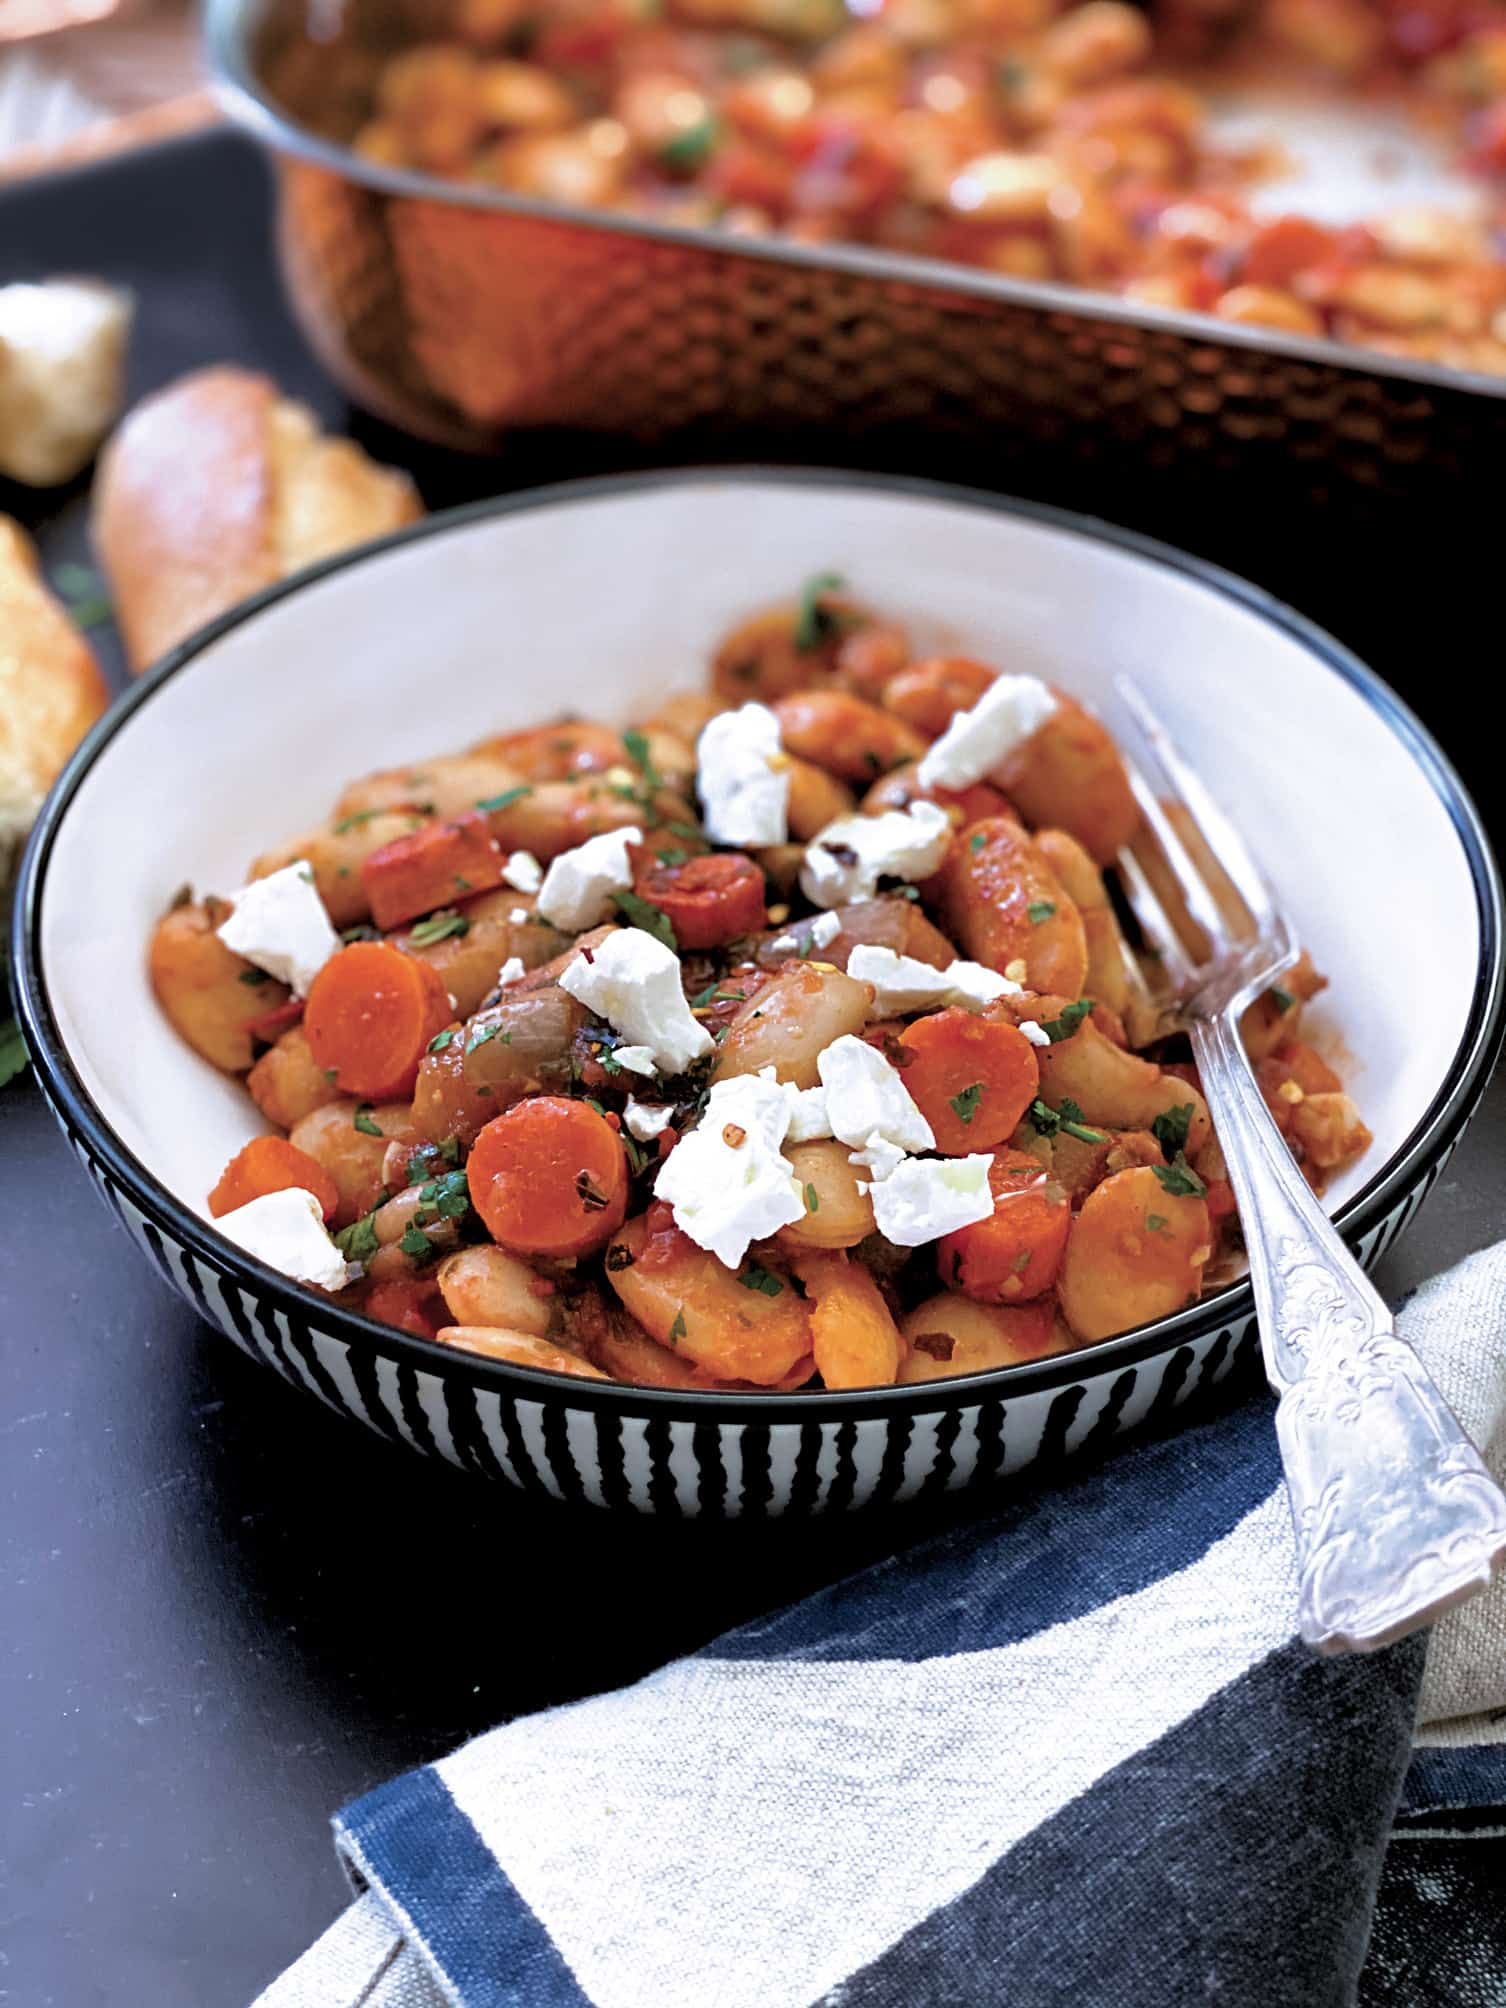 A bowl with beans, carrots, feta cheese crumbles, a fork and a large pan with beans at the back.